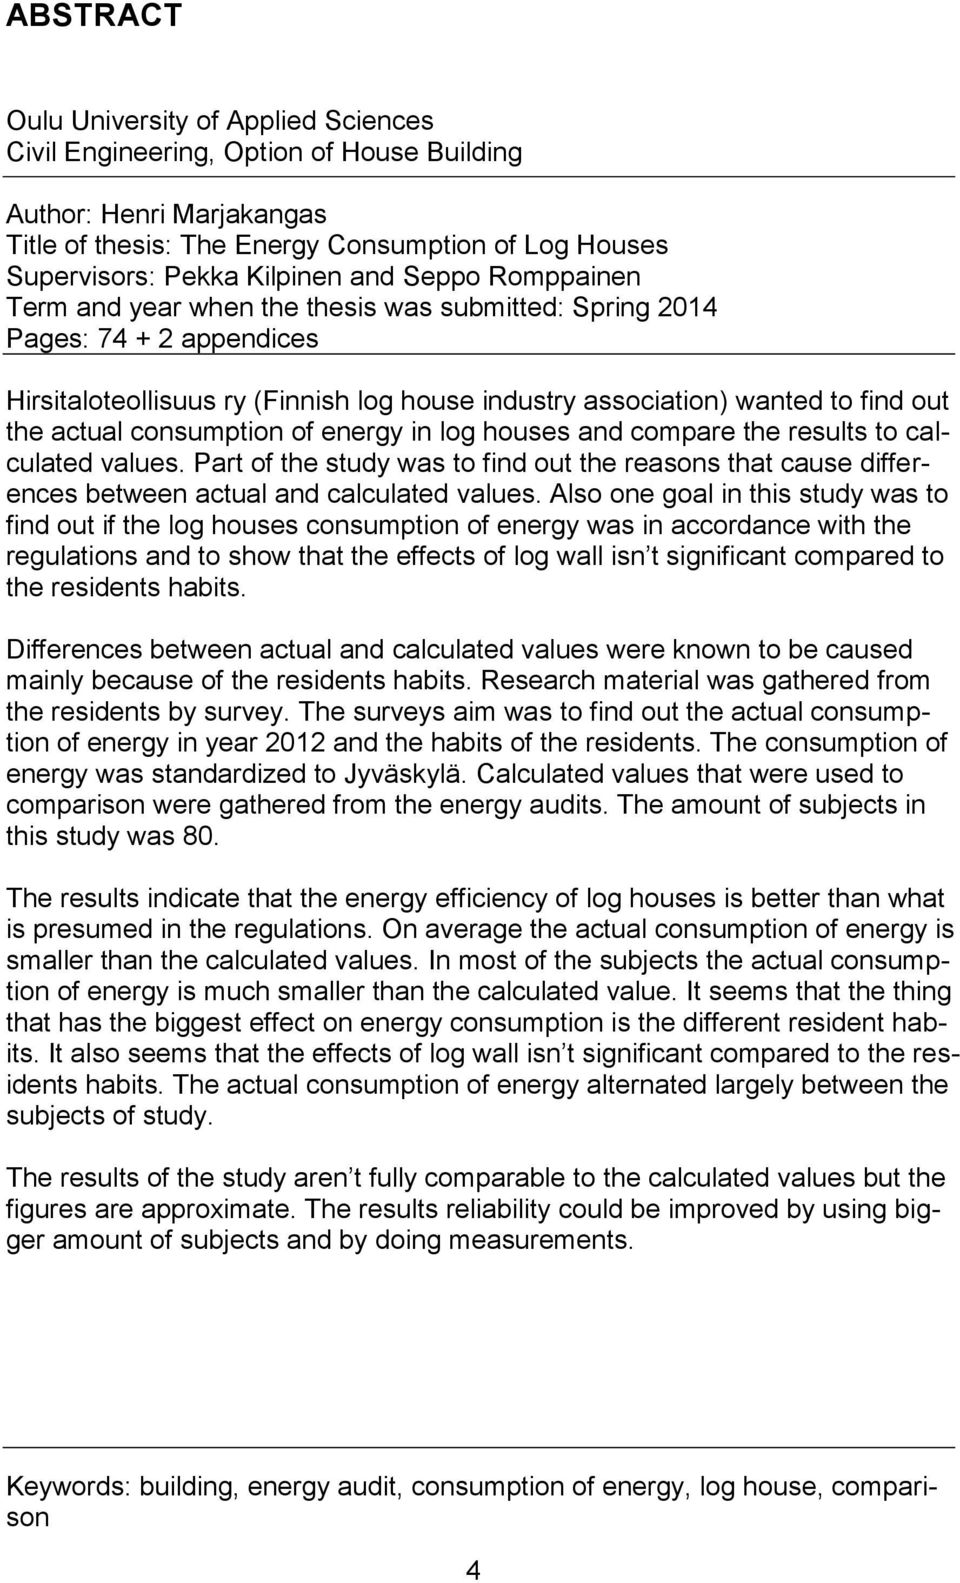 consumption of energy in log houses and compare the results to calculated values. Part of the study was to find out the reasons that cause differences between actual and calculated values.